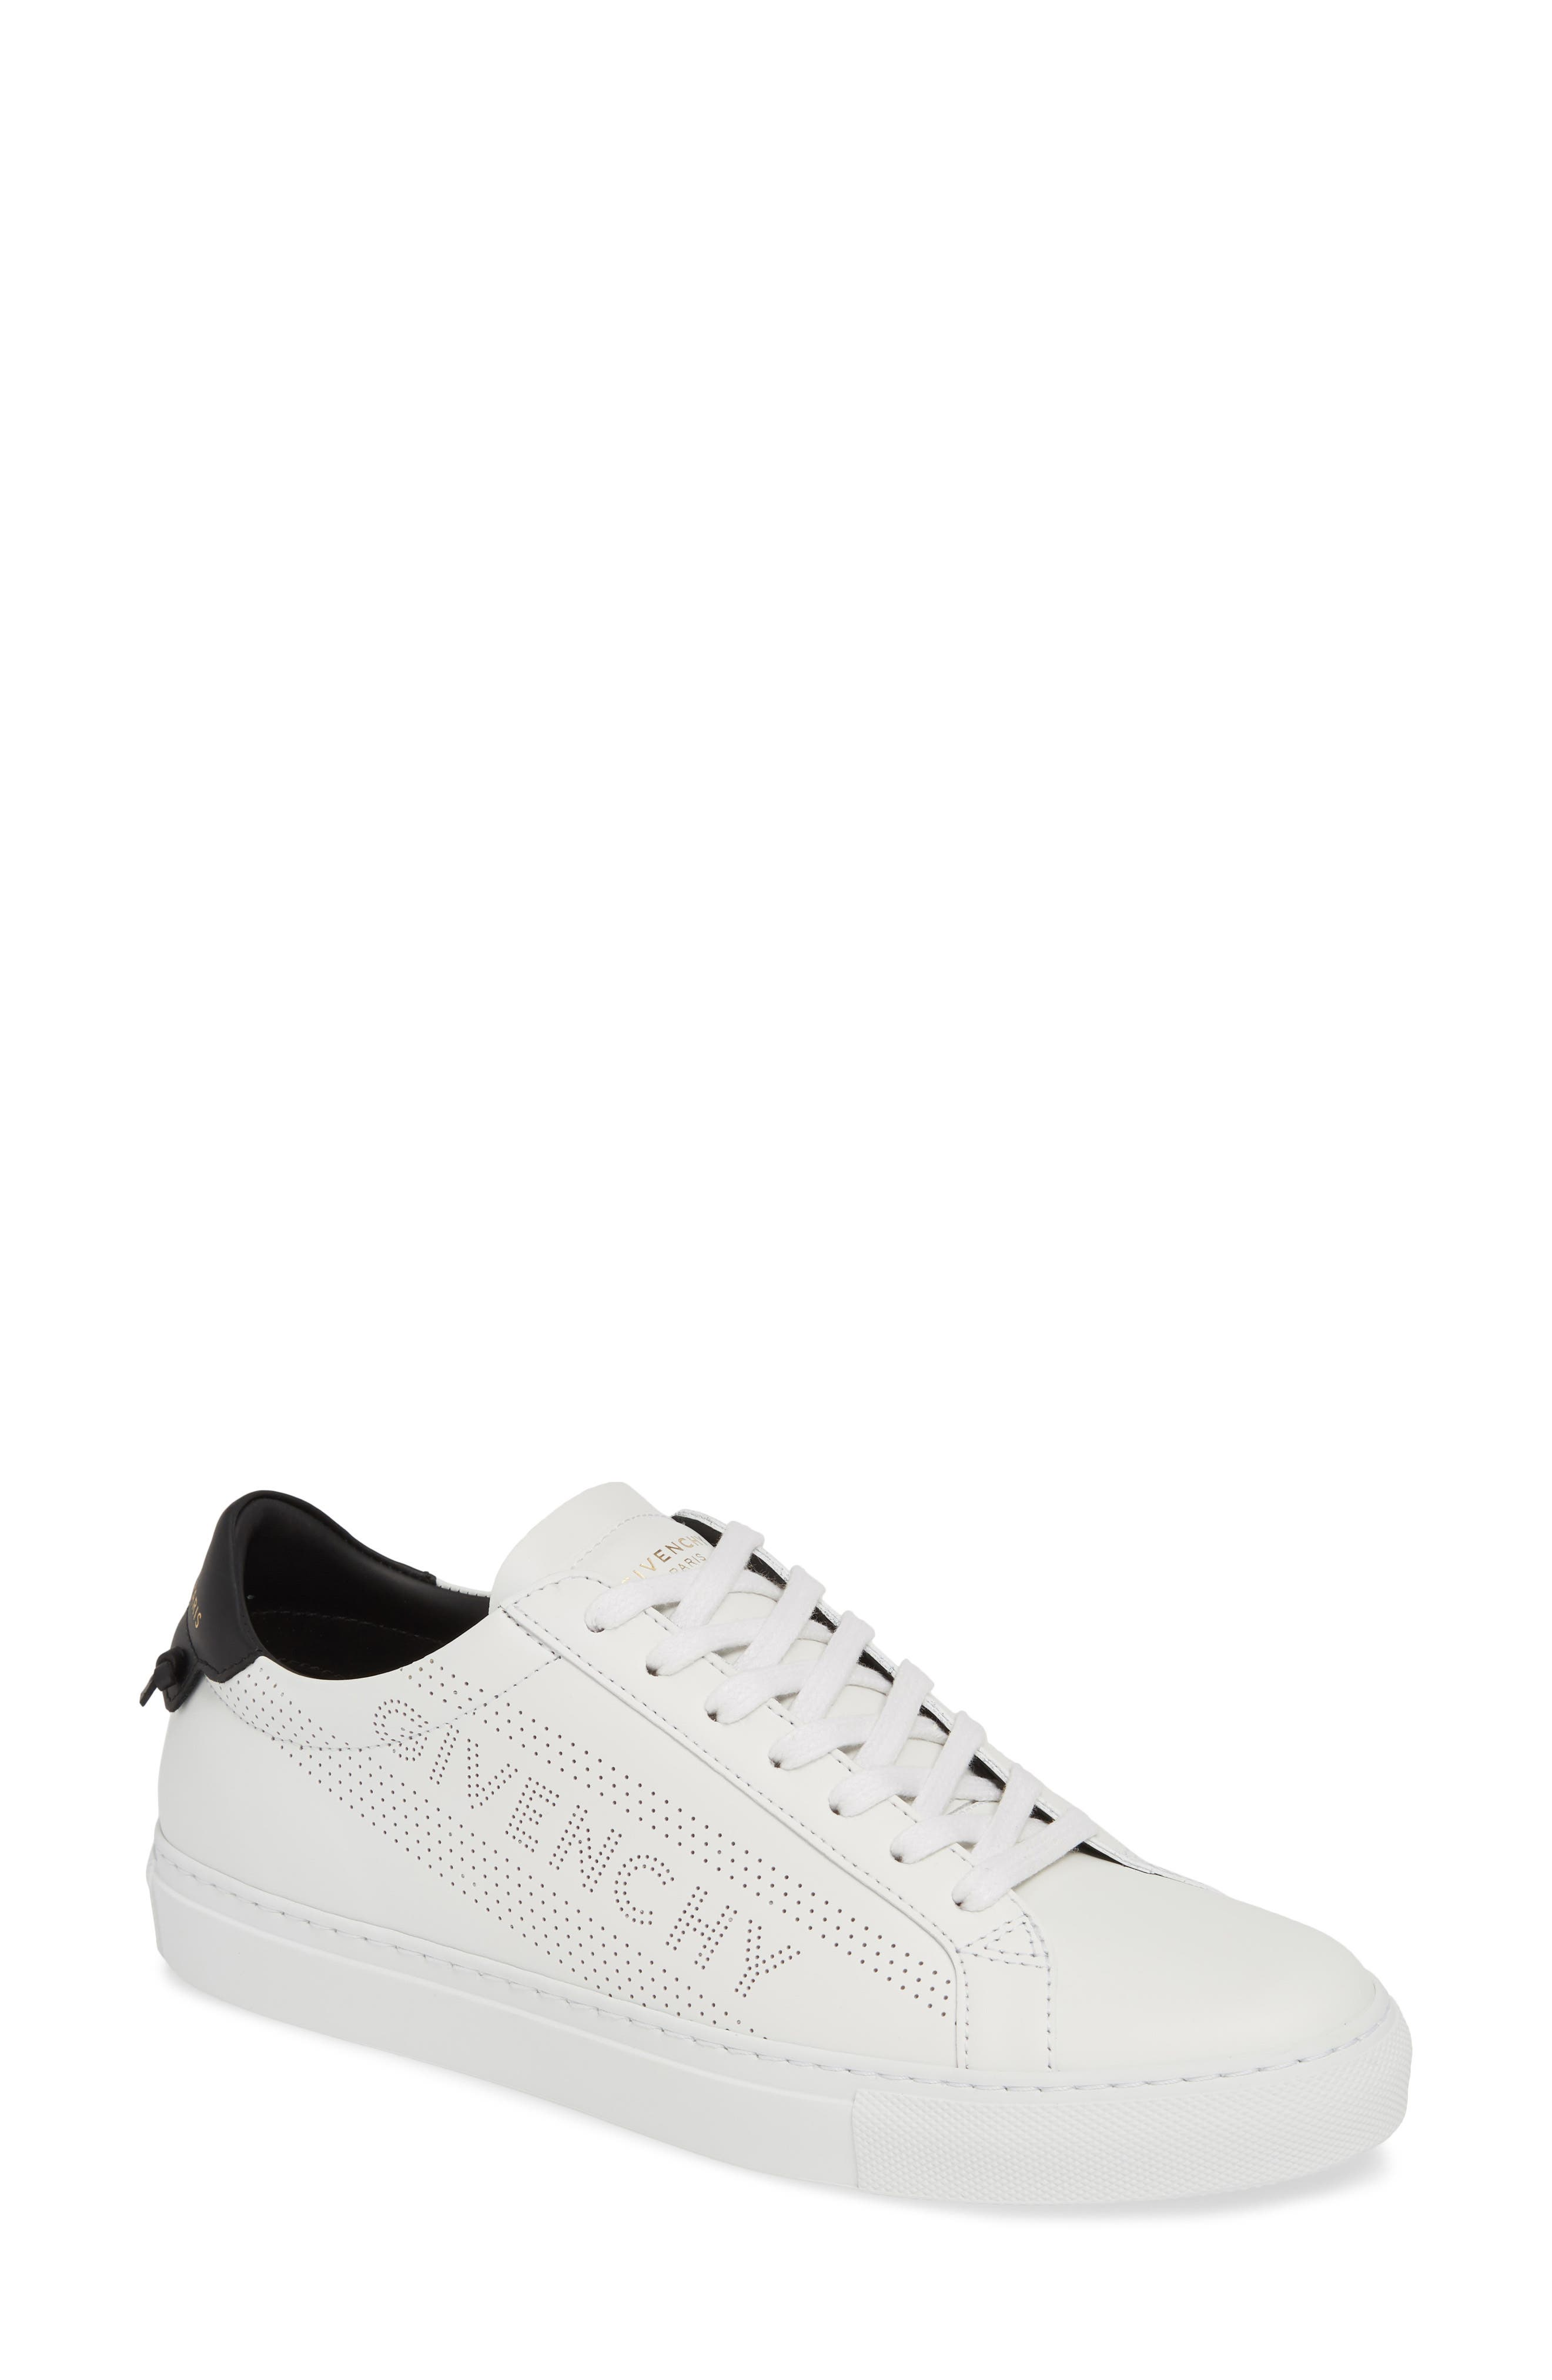 Givenchy Women's Givenchy ShoesNordstrom Women's ShoesNordstrom Givenchy Women's Own0PX8Nk